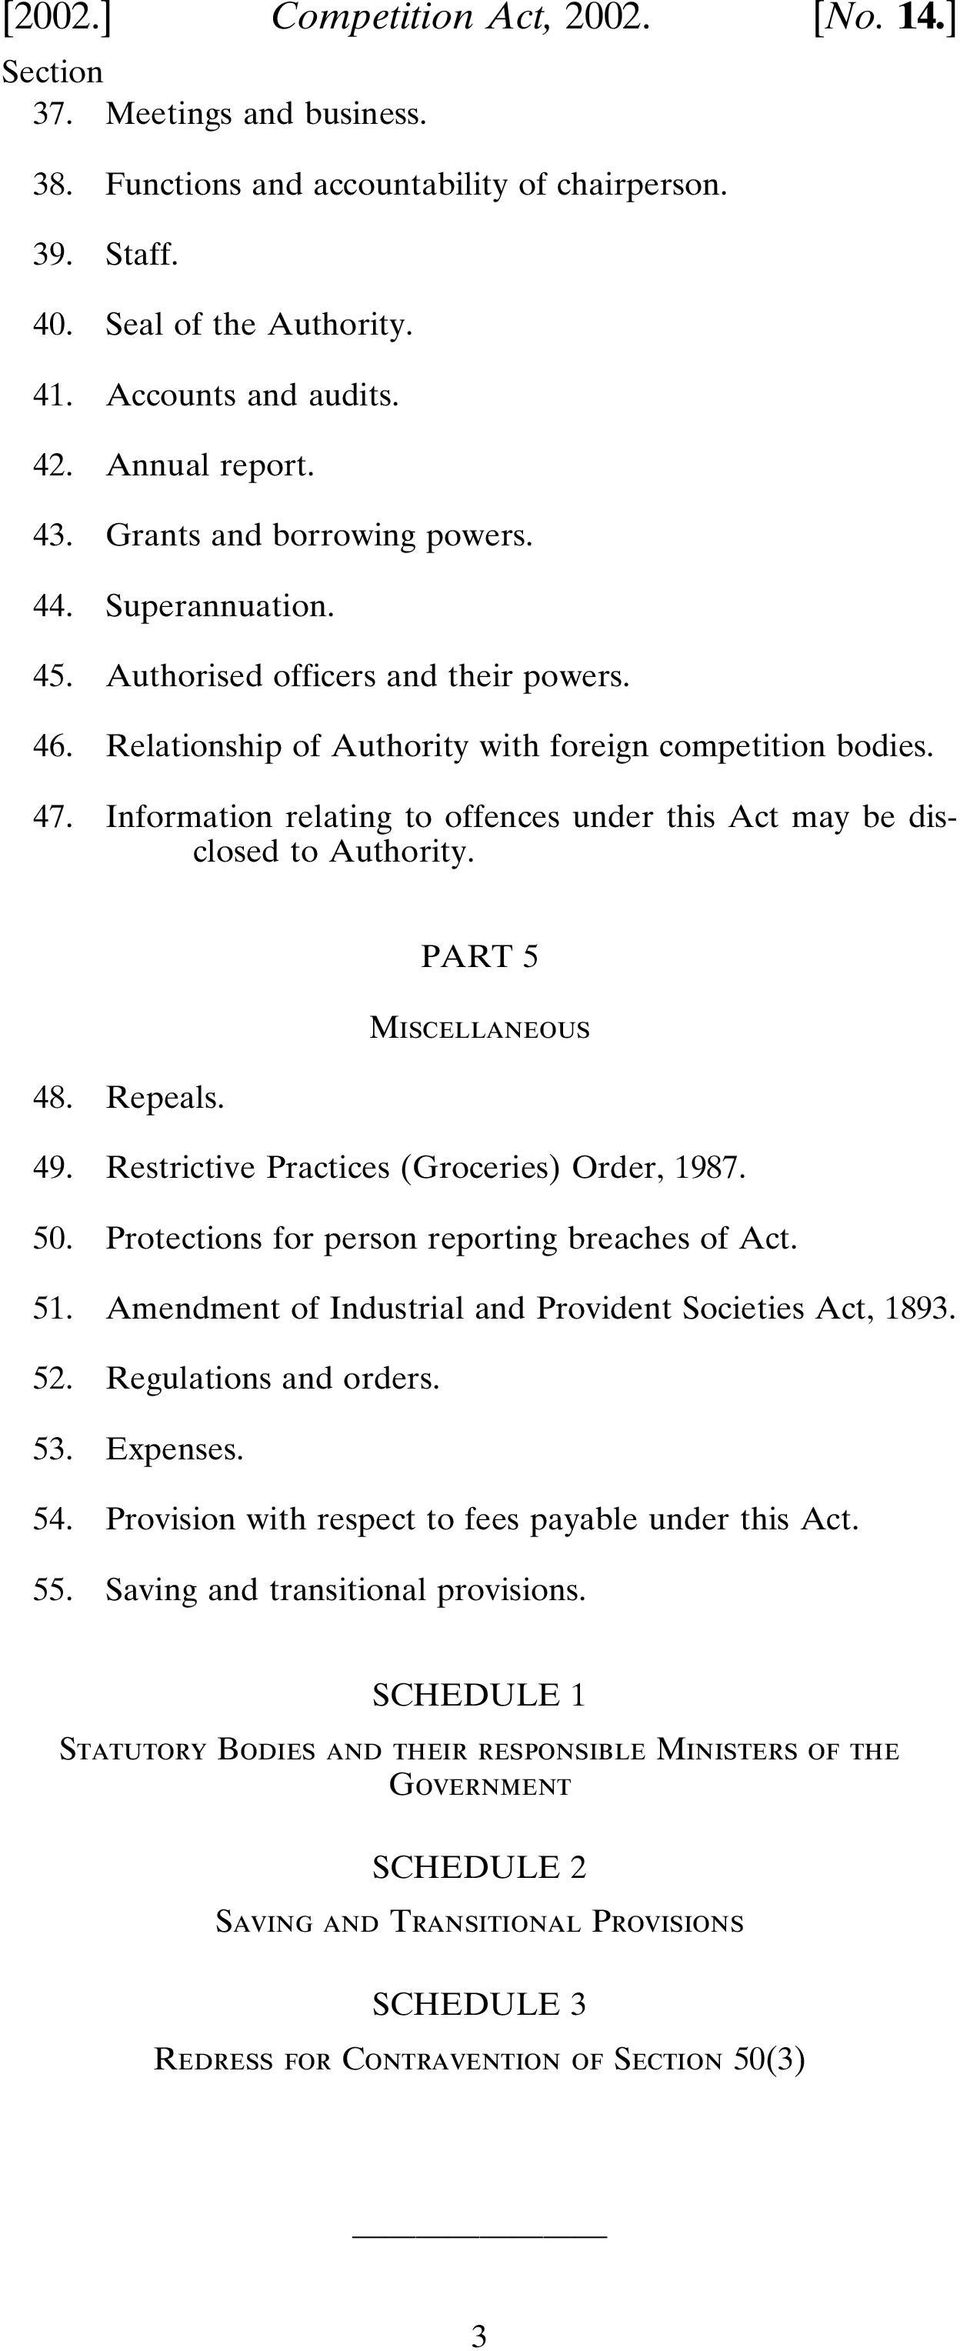 Information relating to offences under this Act may be disclosed to Authority. PART 5 Miscellaneous 48. Repeals. 49. Restrictive Practices (Groceries) Order, 1987. 50.